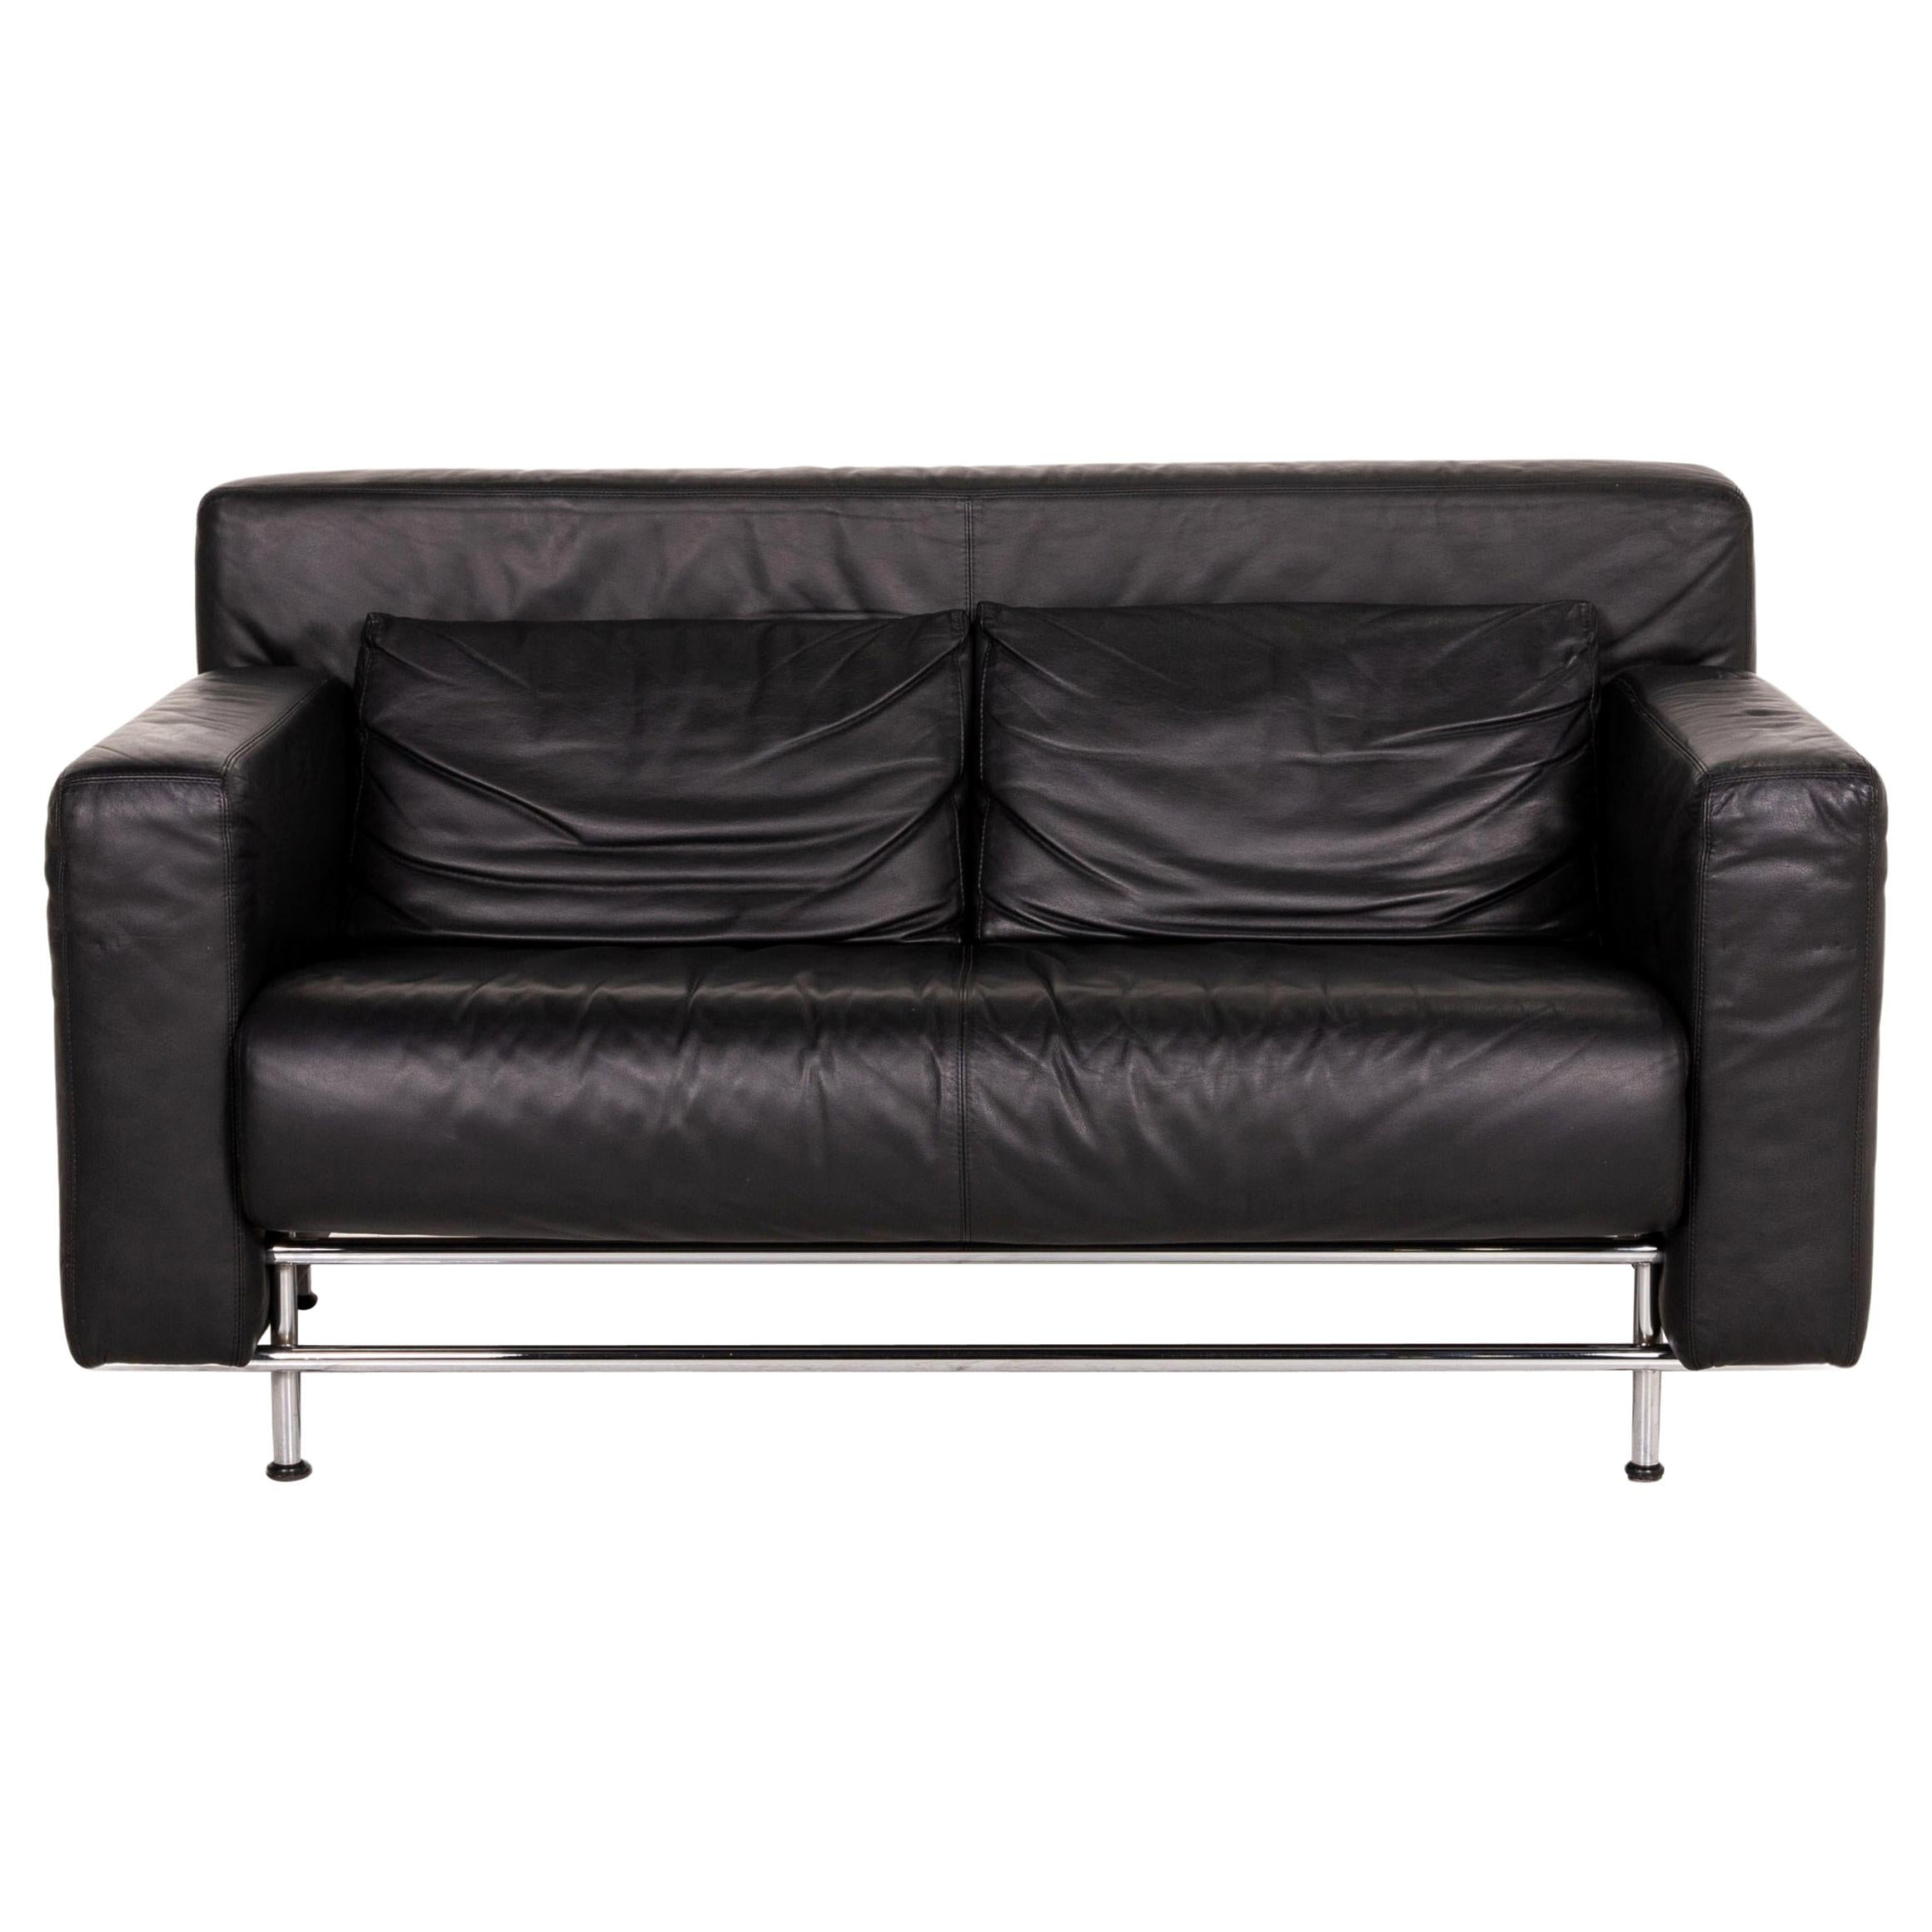 COR Quarta Leather Sofa Black Two-Seater Couch